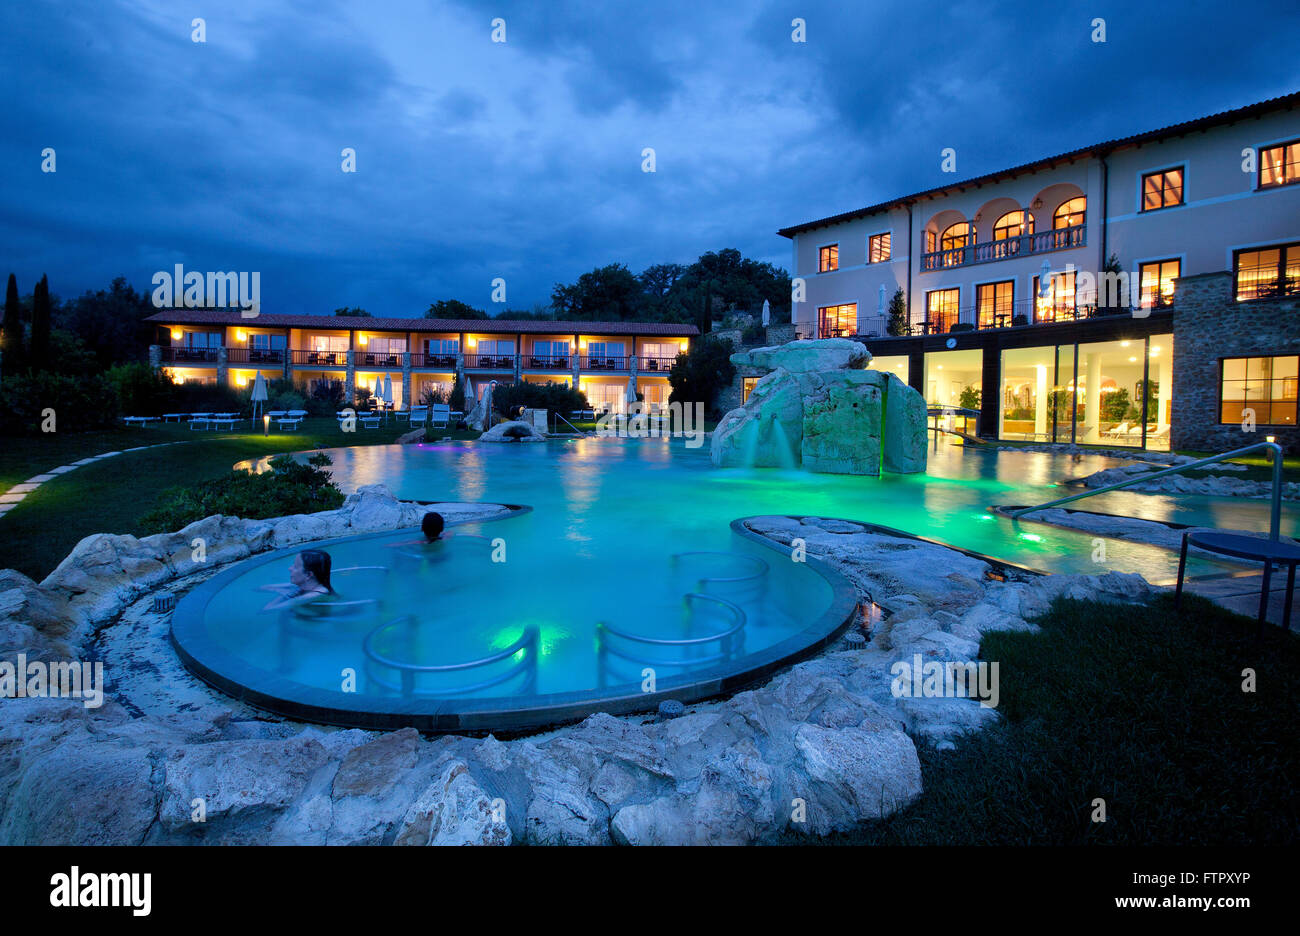 Hotel adler thermae spa relax resort bagno vignoni toscana stock photo royalty free image - Adler bagno vignoni hotel ...